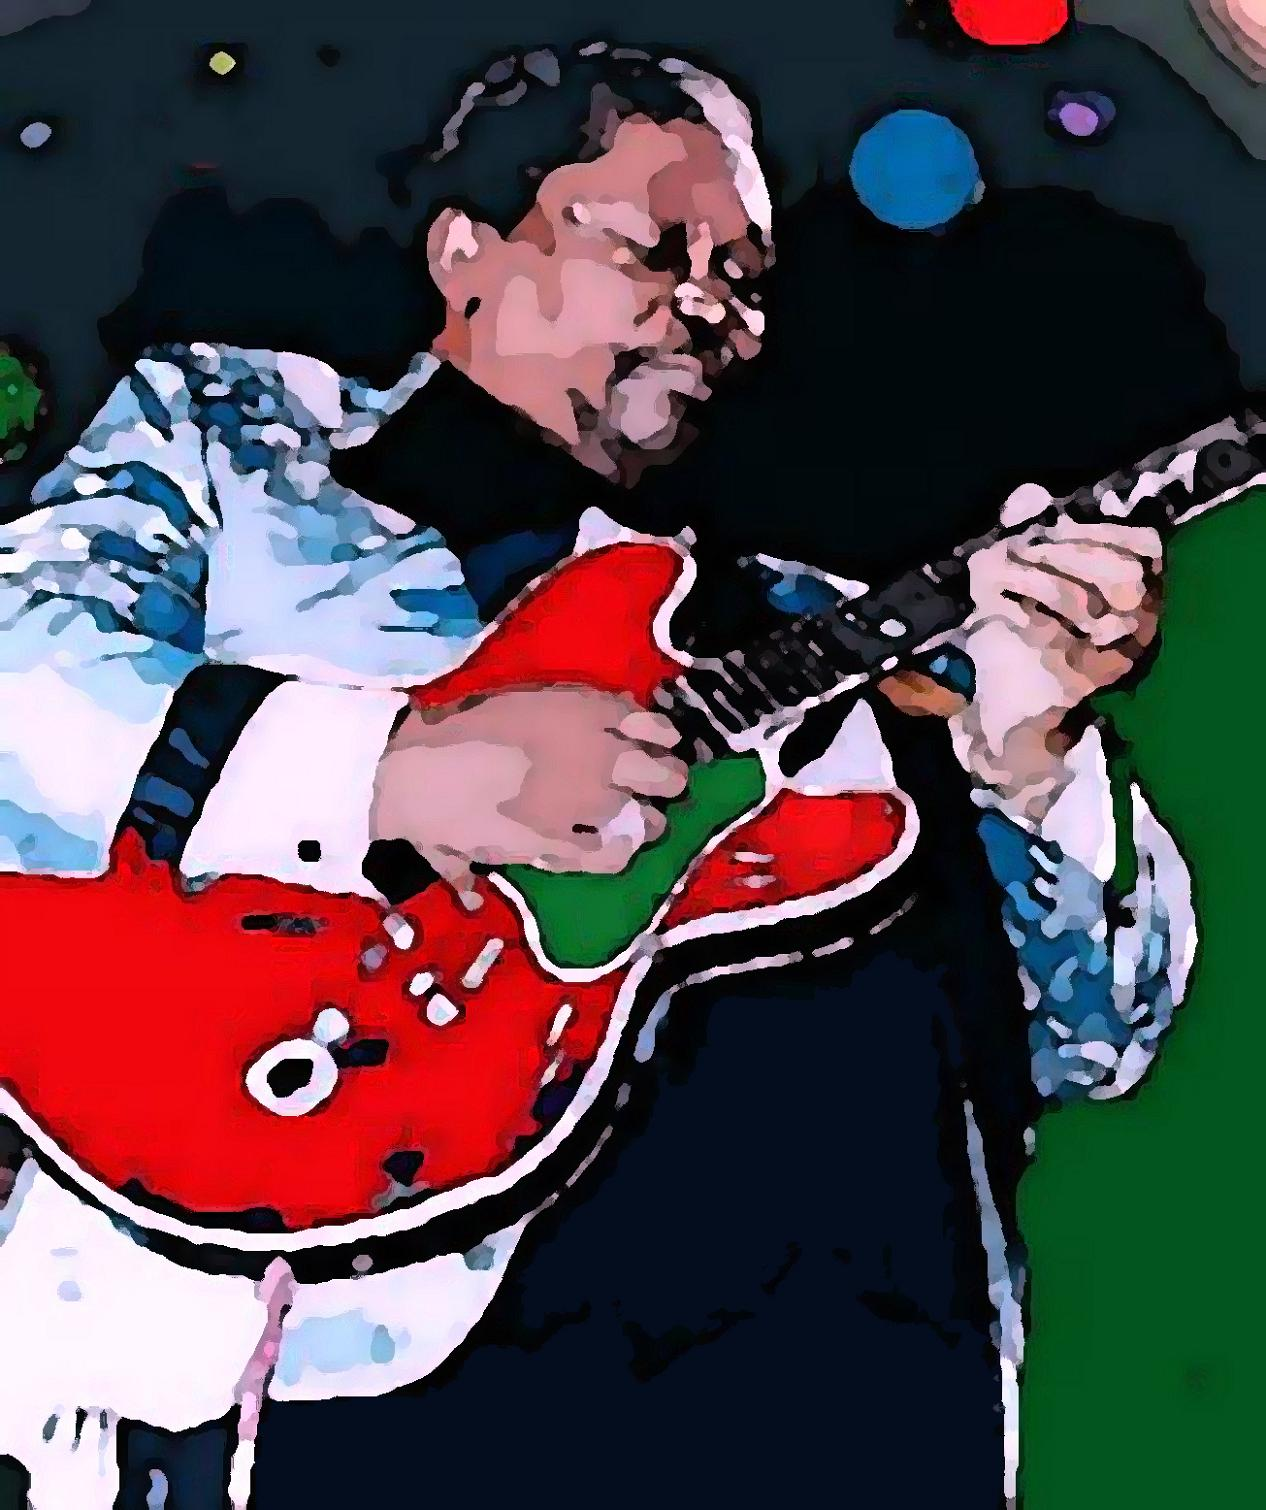 BB King with autograph artwork by Vesa Peltonen - art listed for sale on Artplode